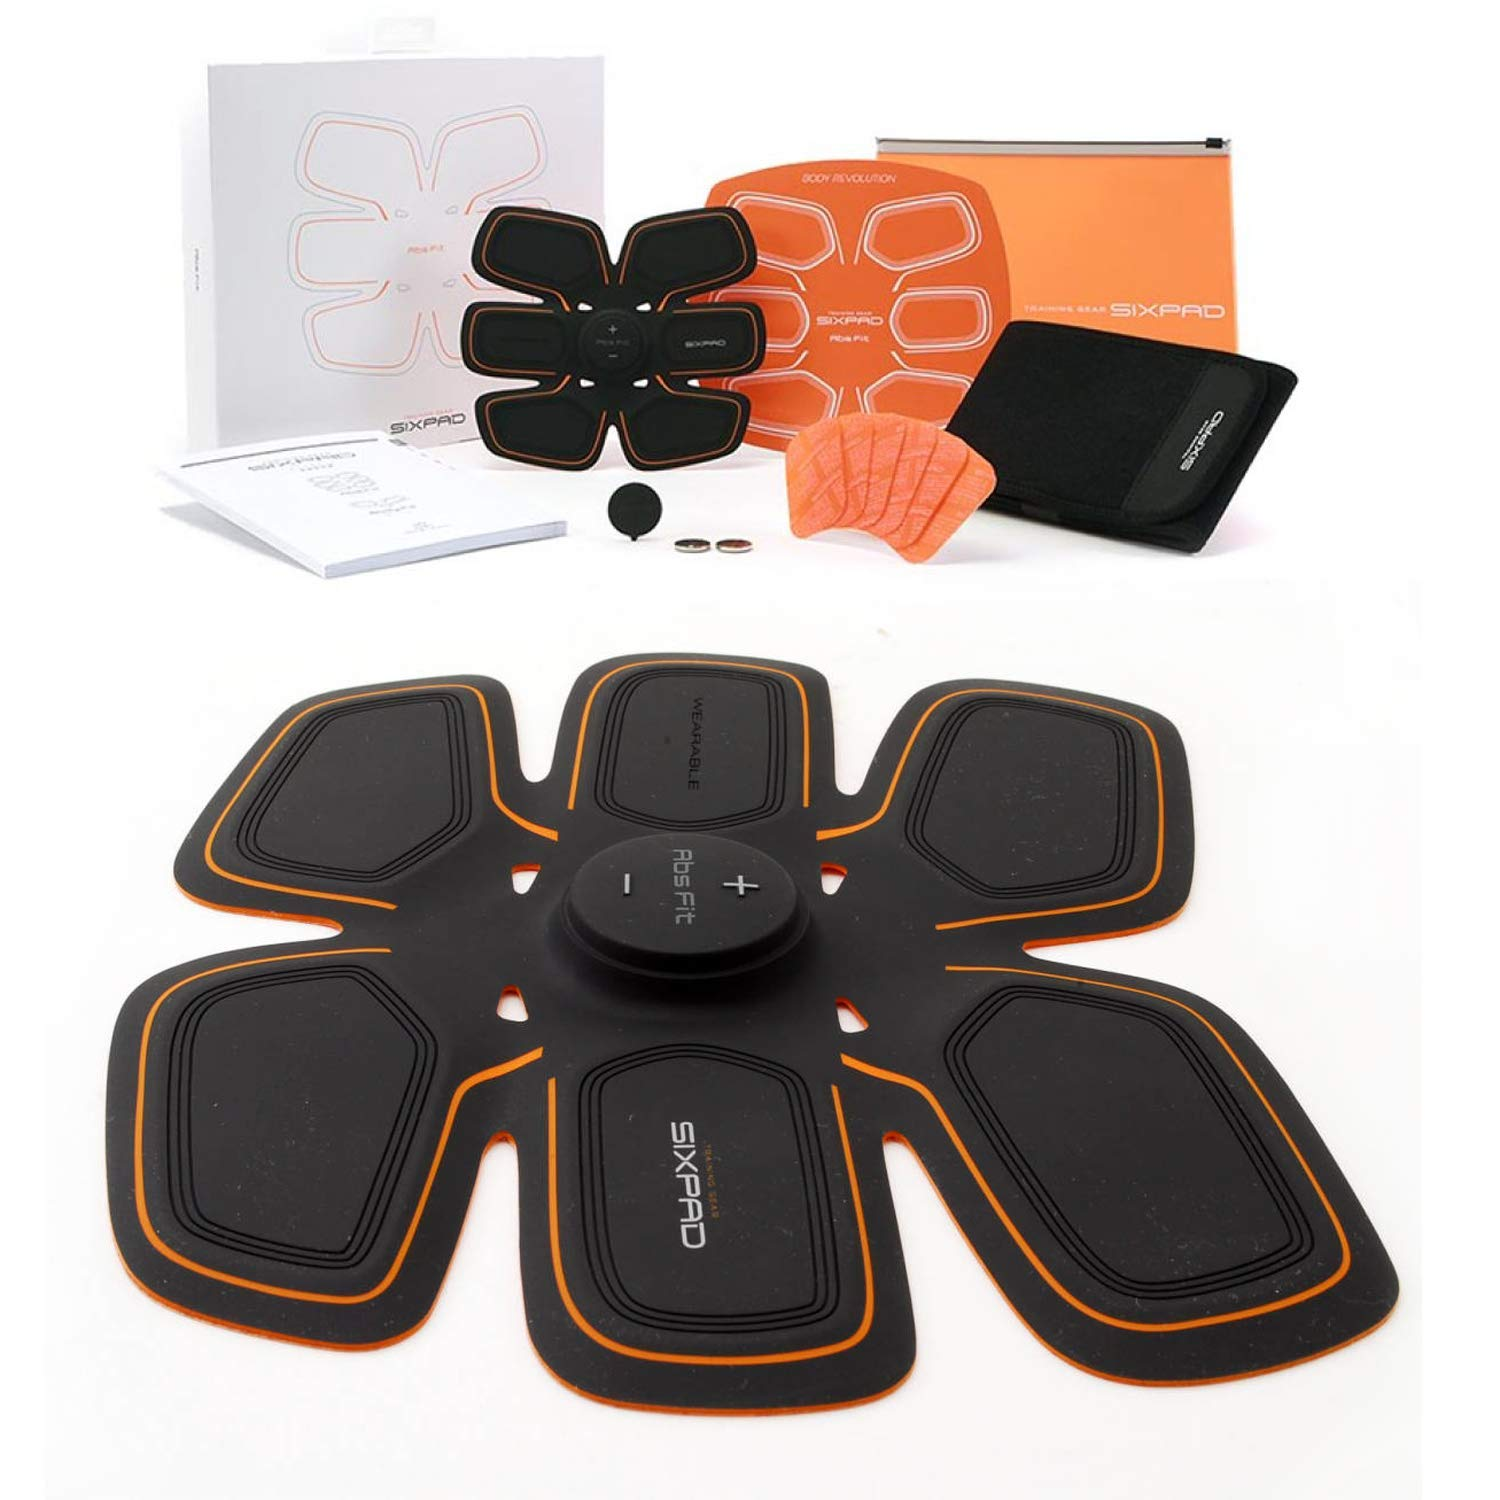 Sixpad ABS Fit//Fit 2 Gel Sheet Pack